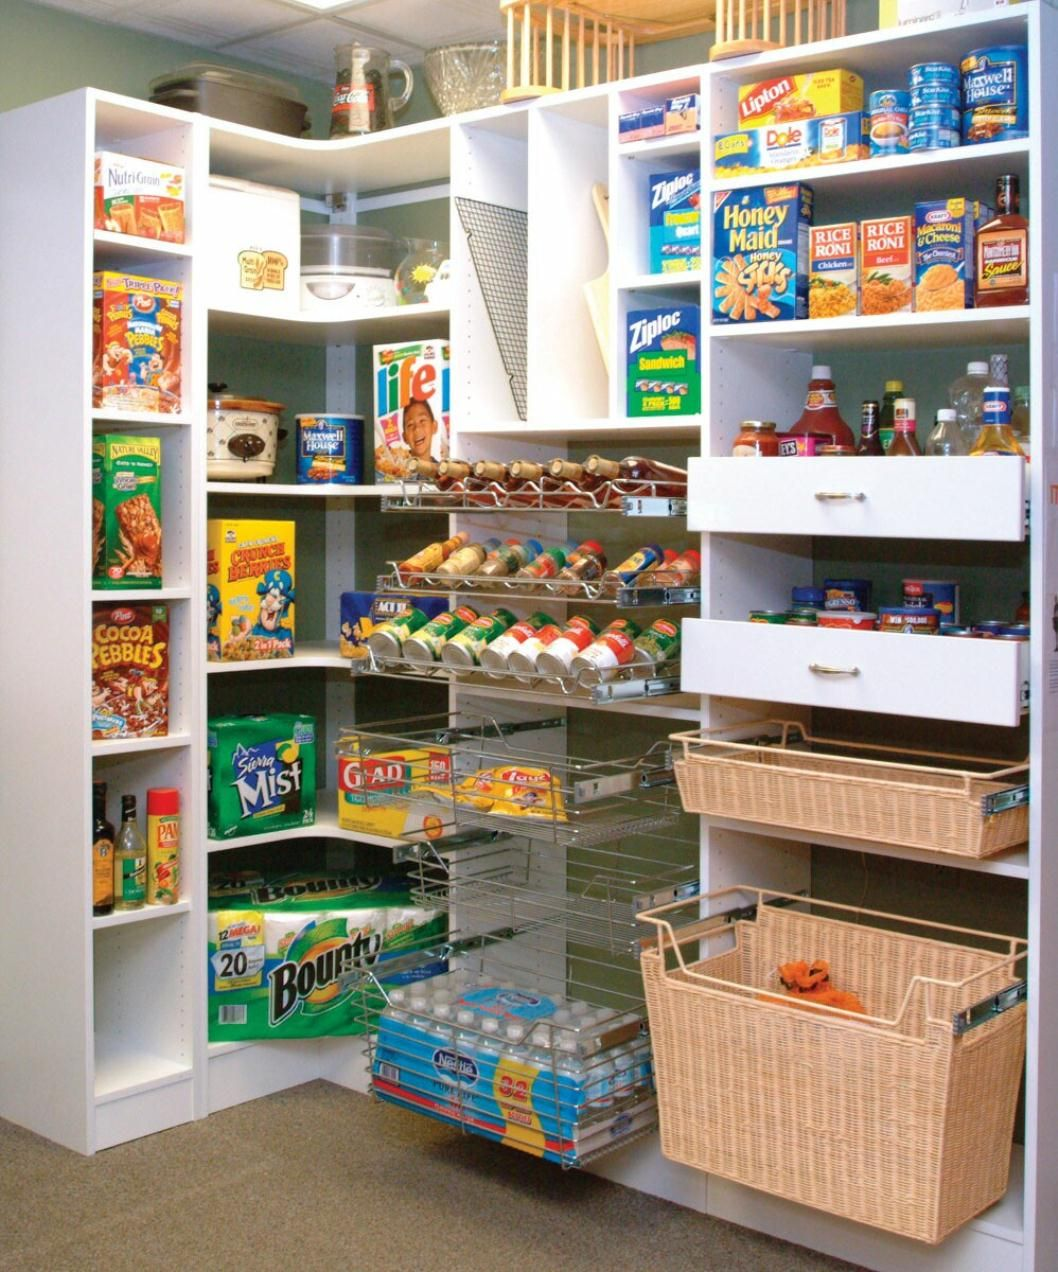 Here Are 5 Ways To Add Functional Space To Your Kitchen Pantry!